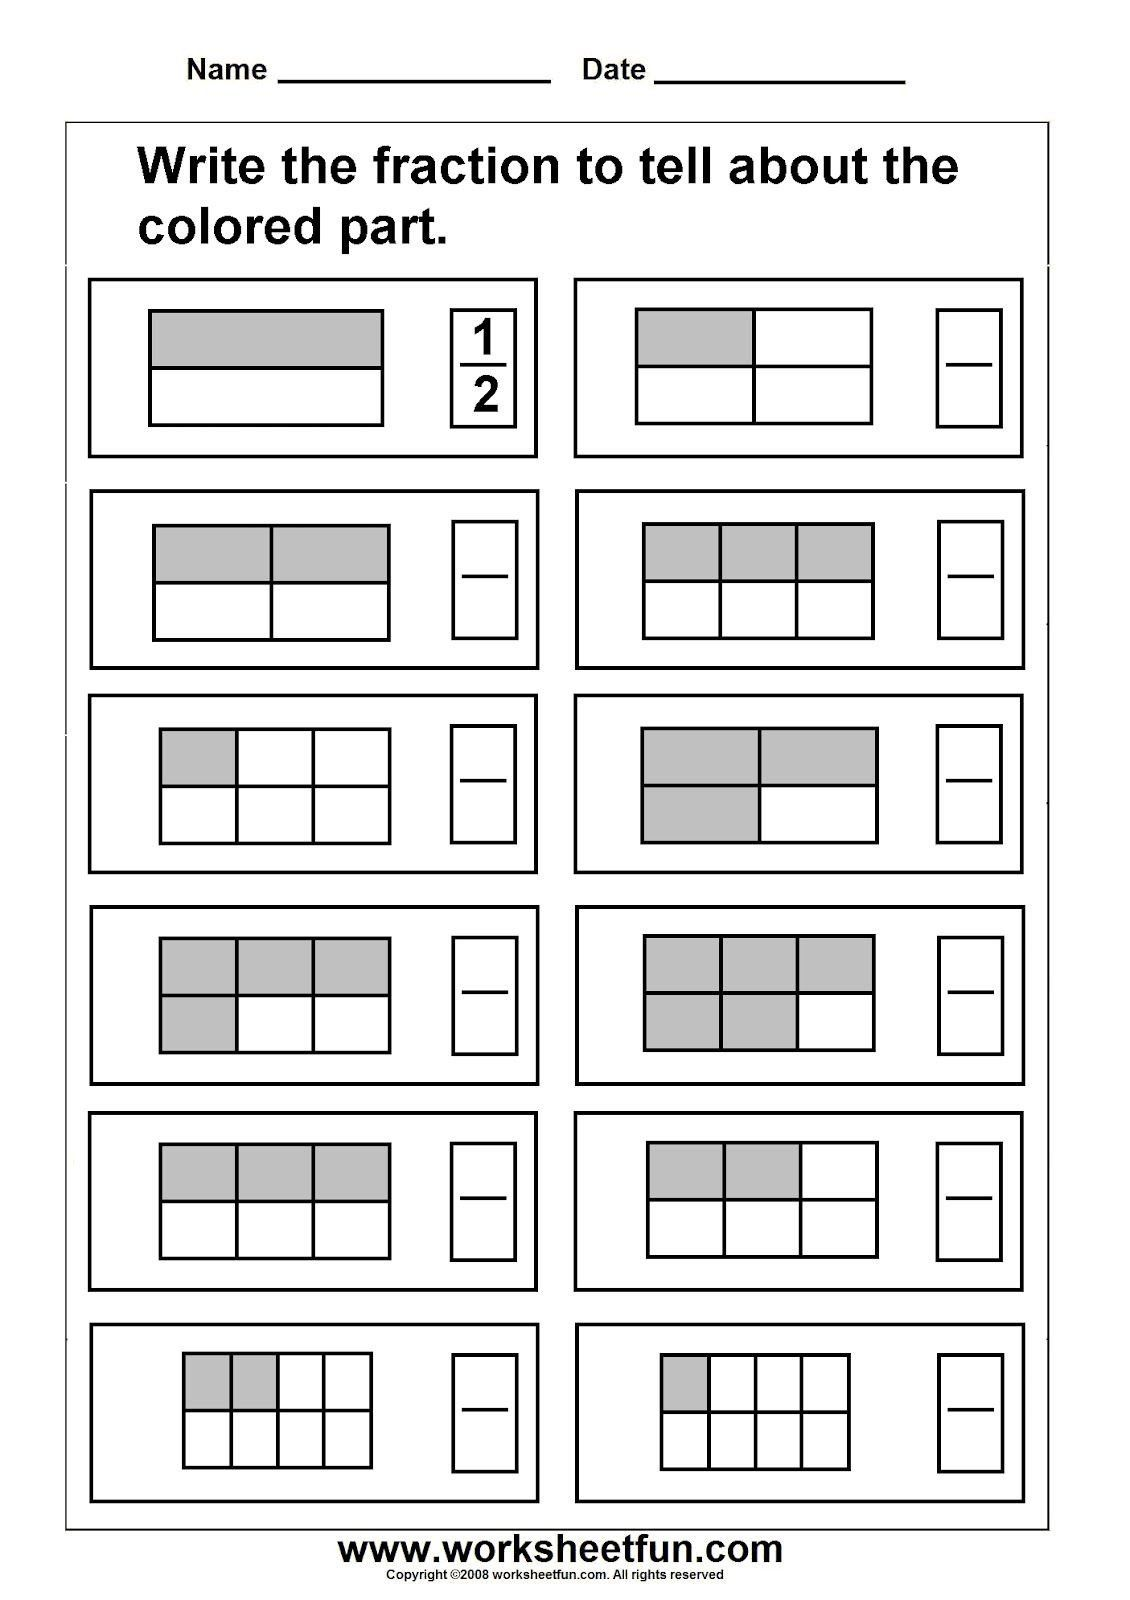 2nd Grade Fractions Worksheet Third Grade Fraction